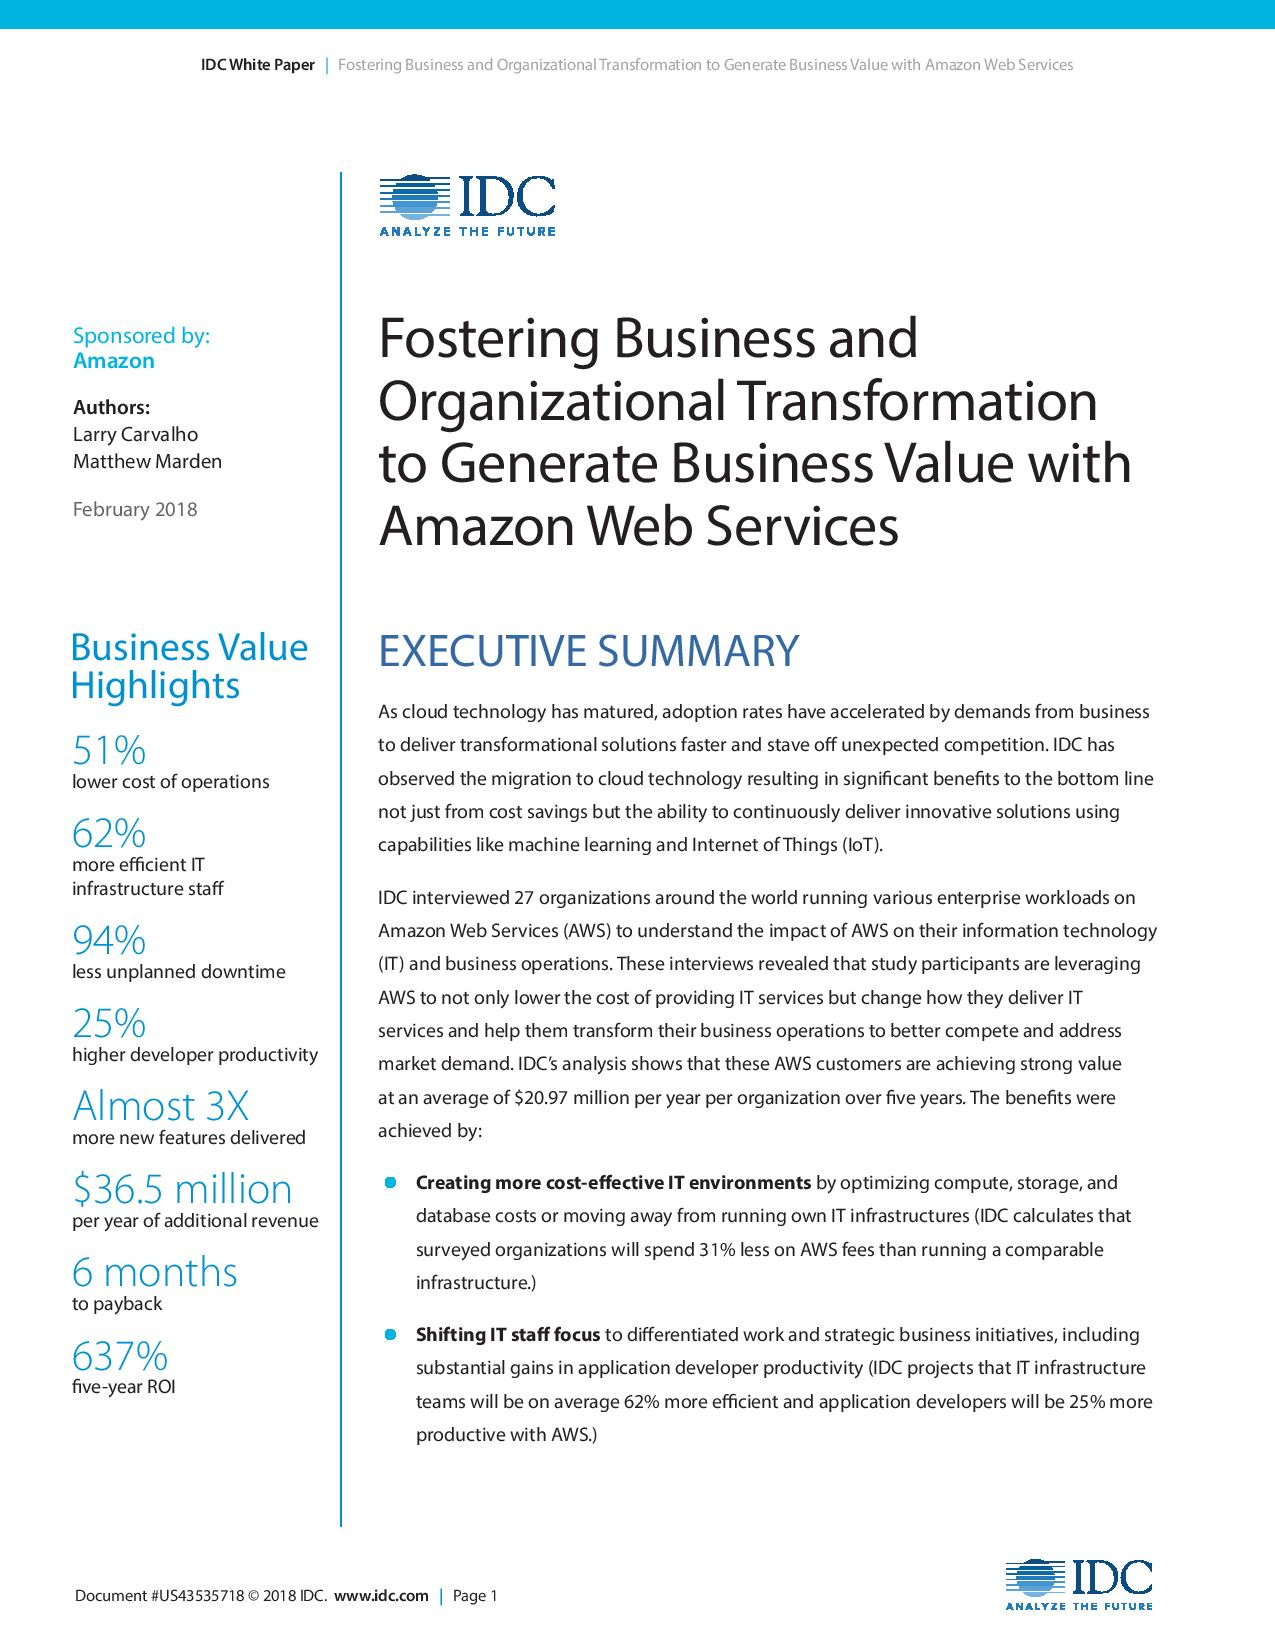 Fostering Business And Organizational Transformation To Generate Business Value With Aws